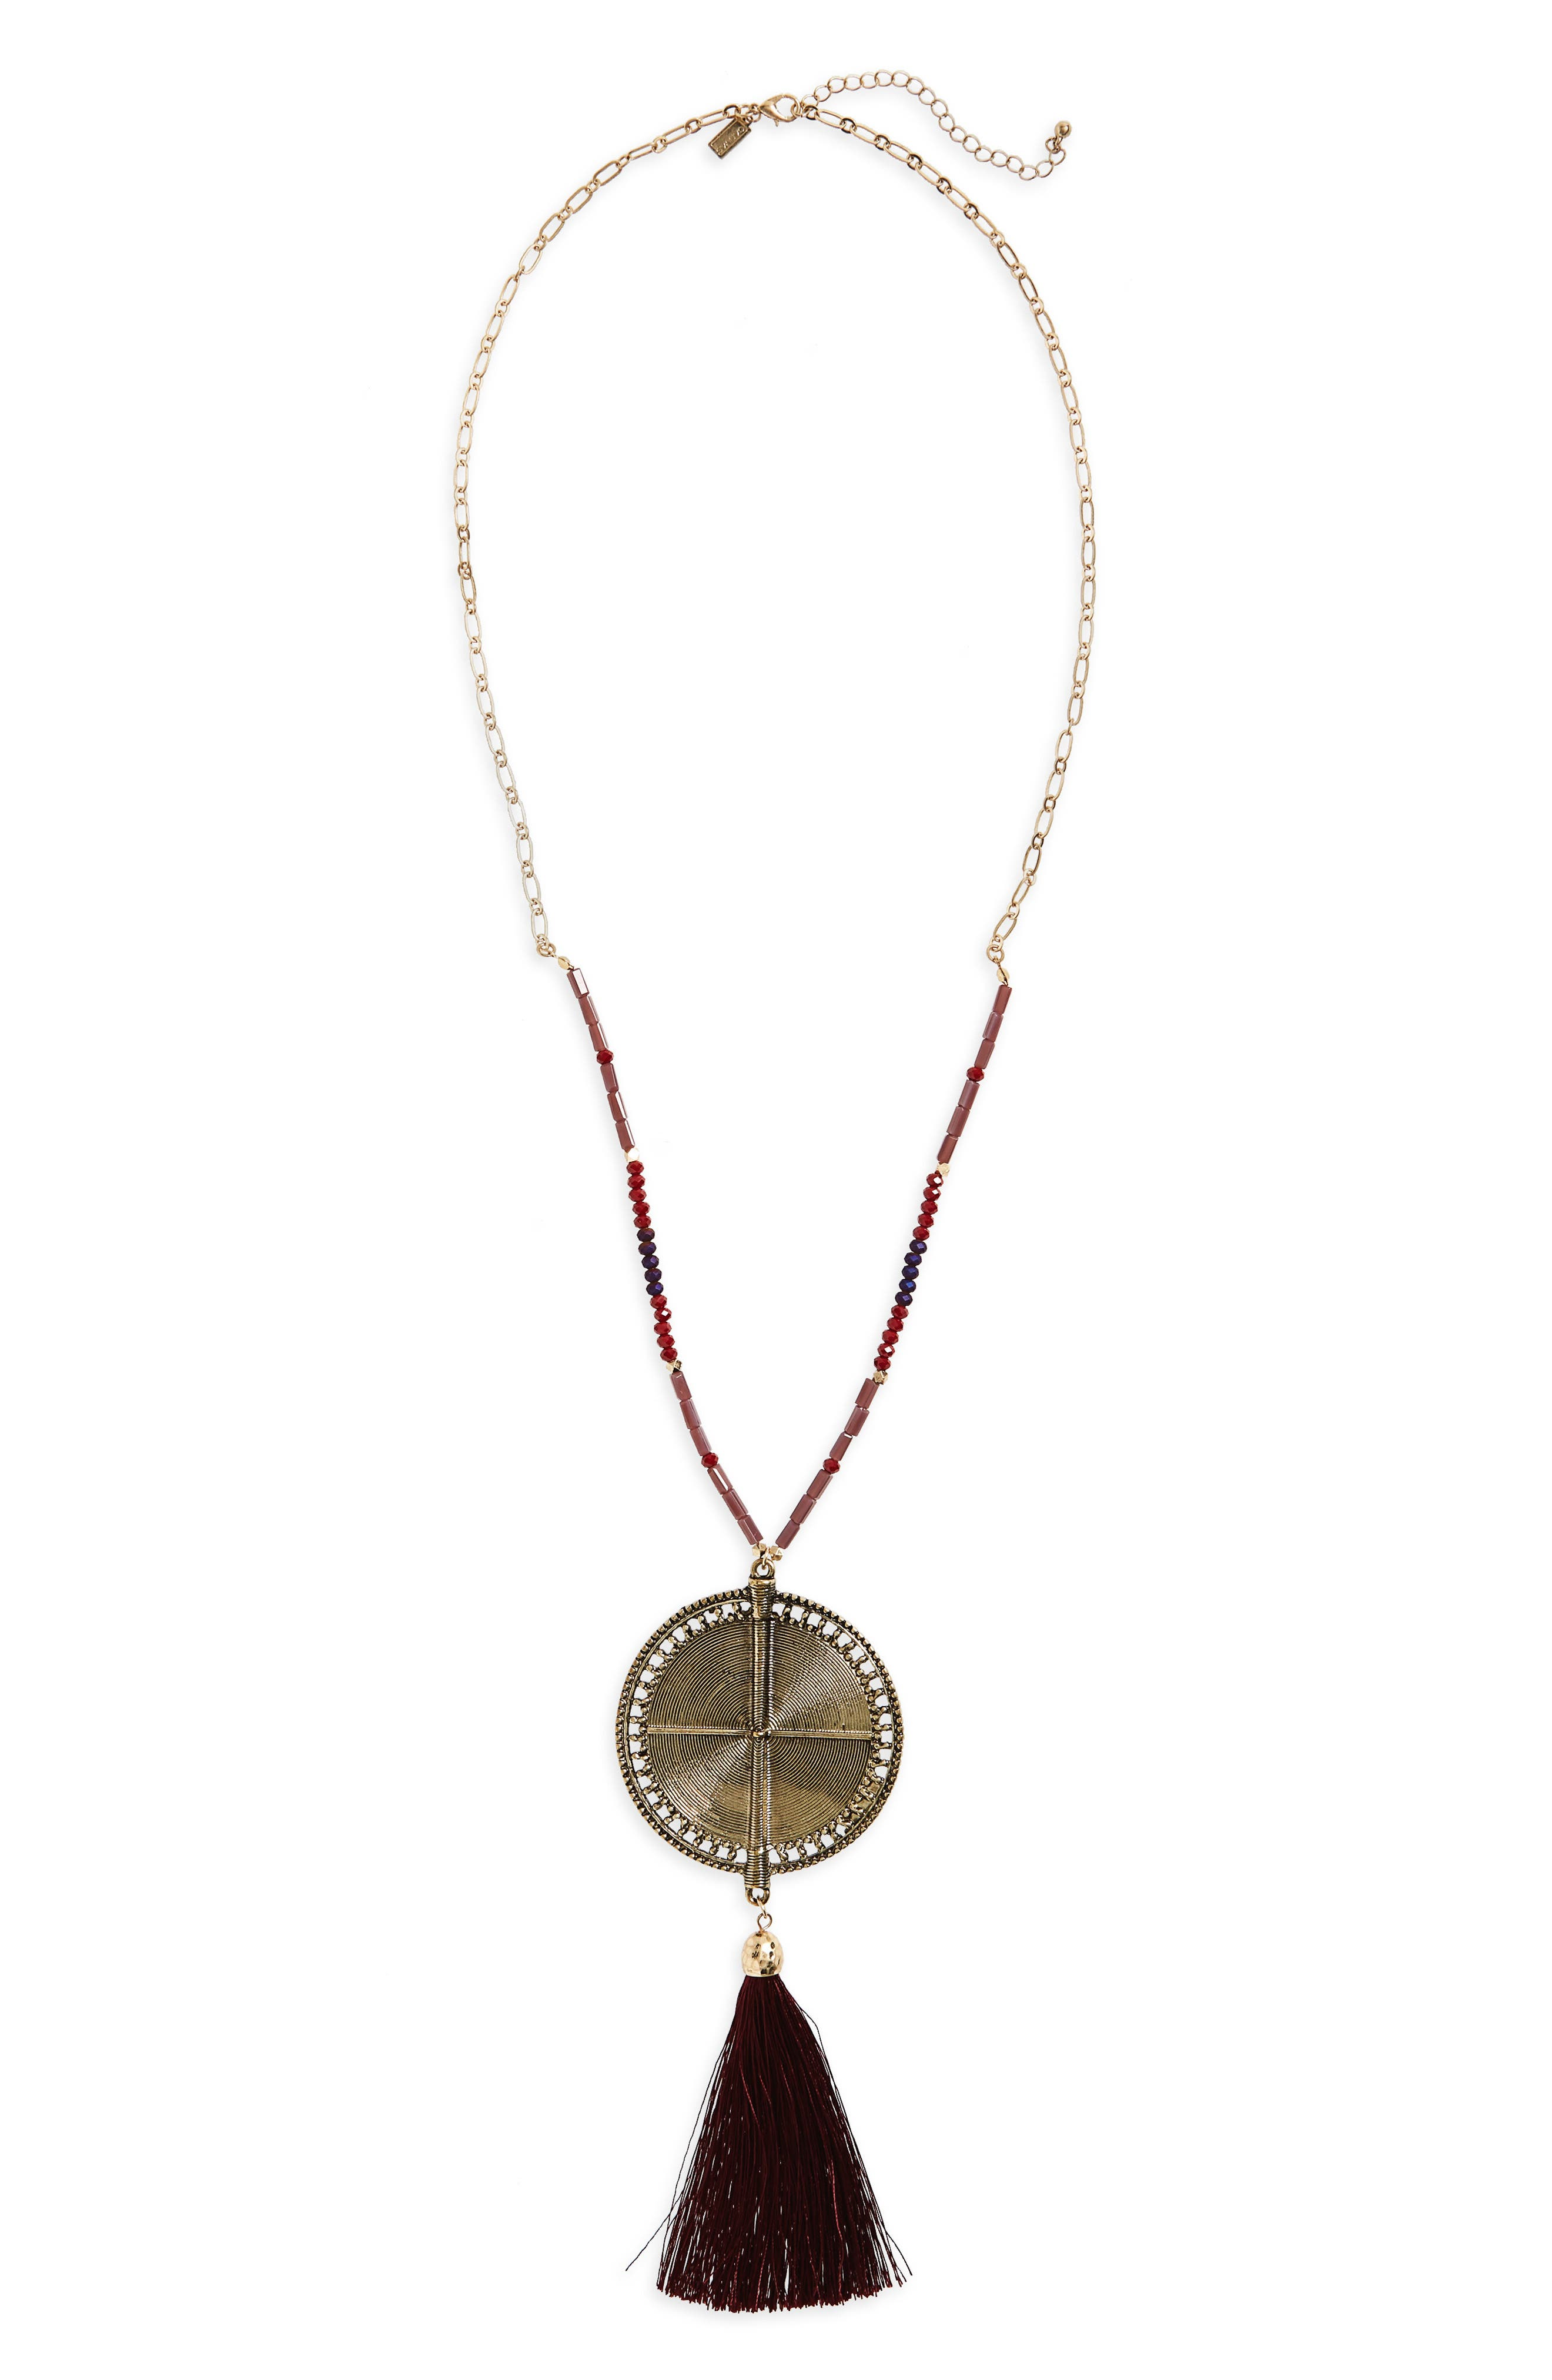 Medallion Pendant Necklace,                             Main thumbnail 1, color,                             Burgundy